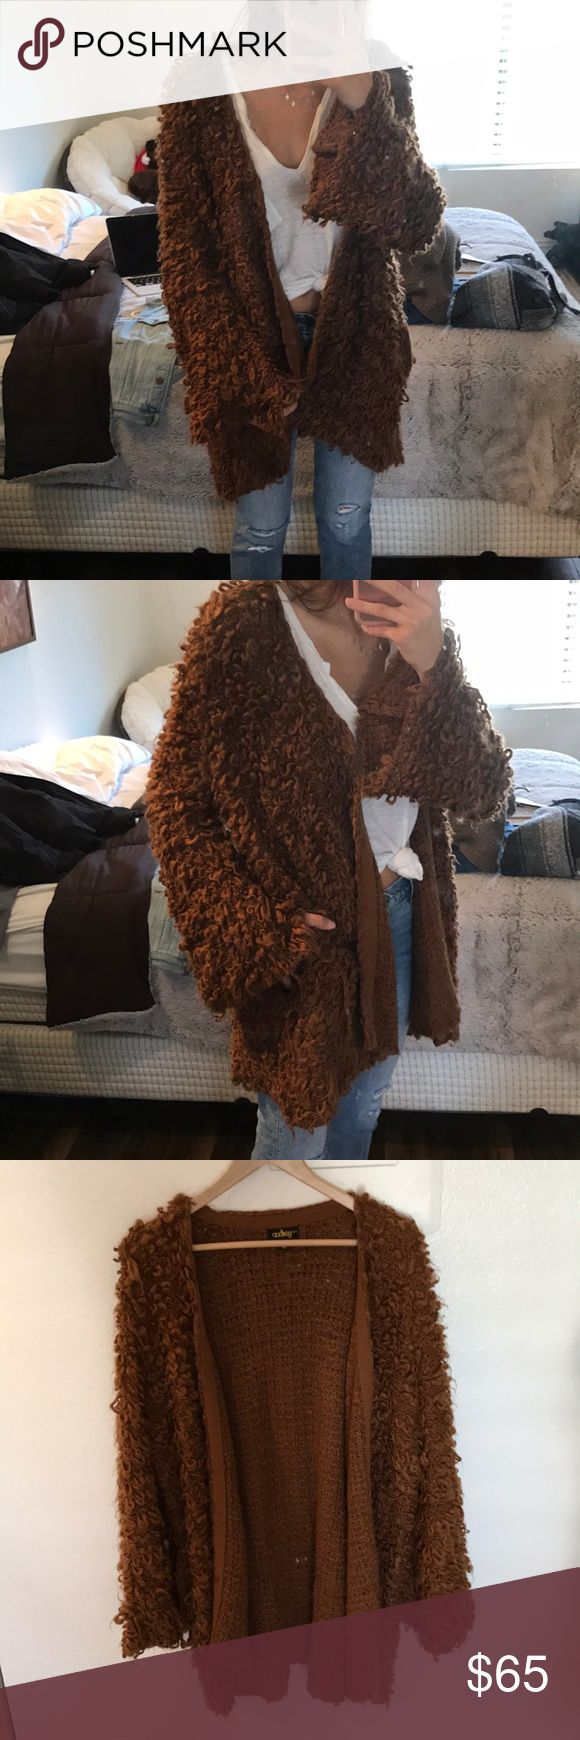 Brown shag coat/cardigan with pockets! Super soft shag cardigan by Audrey 3 + 1 A lot like the free people shag cardigan! Free People Sweaters Cardigans